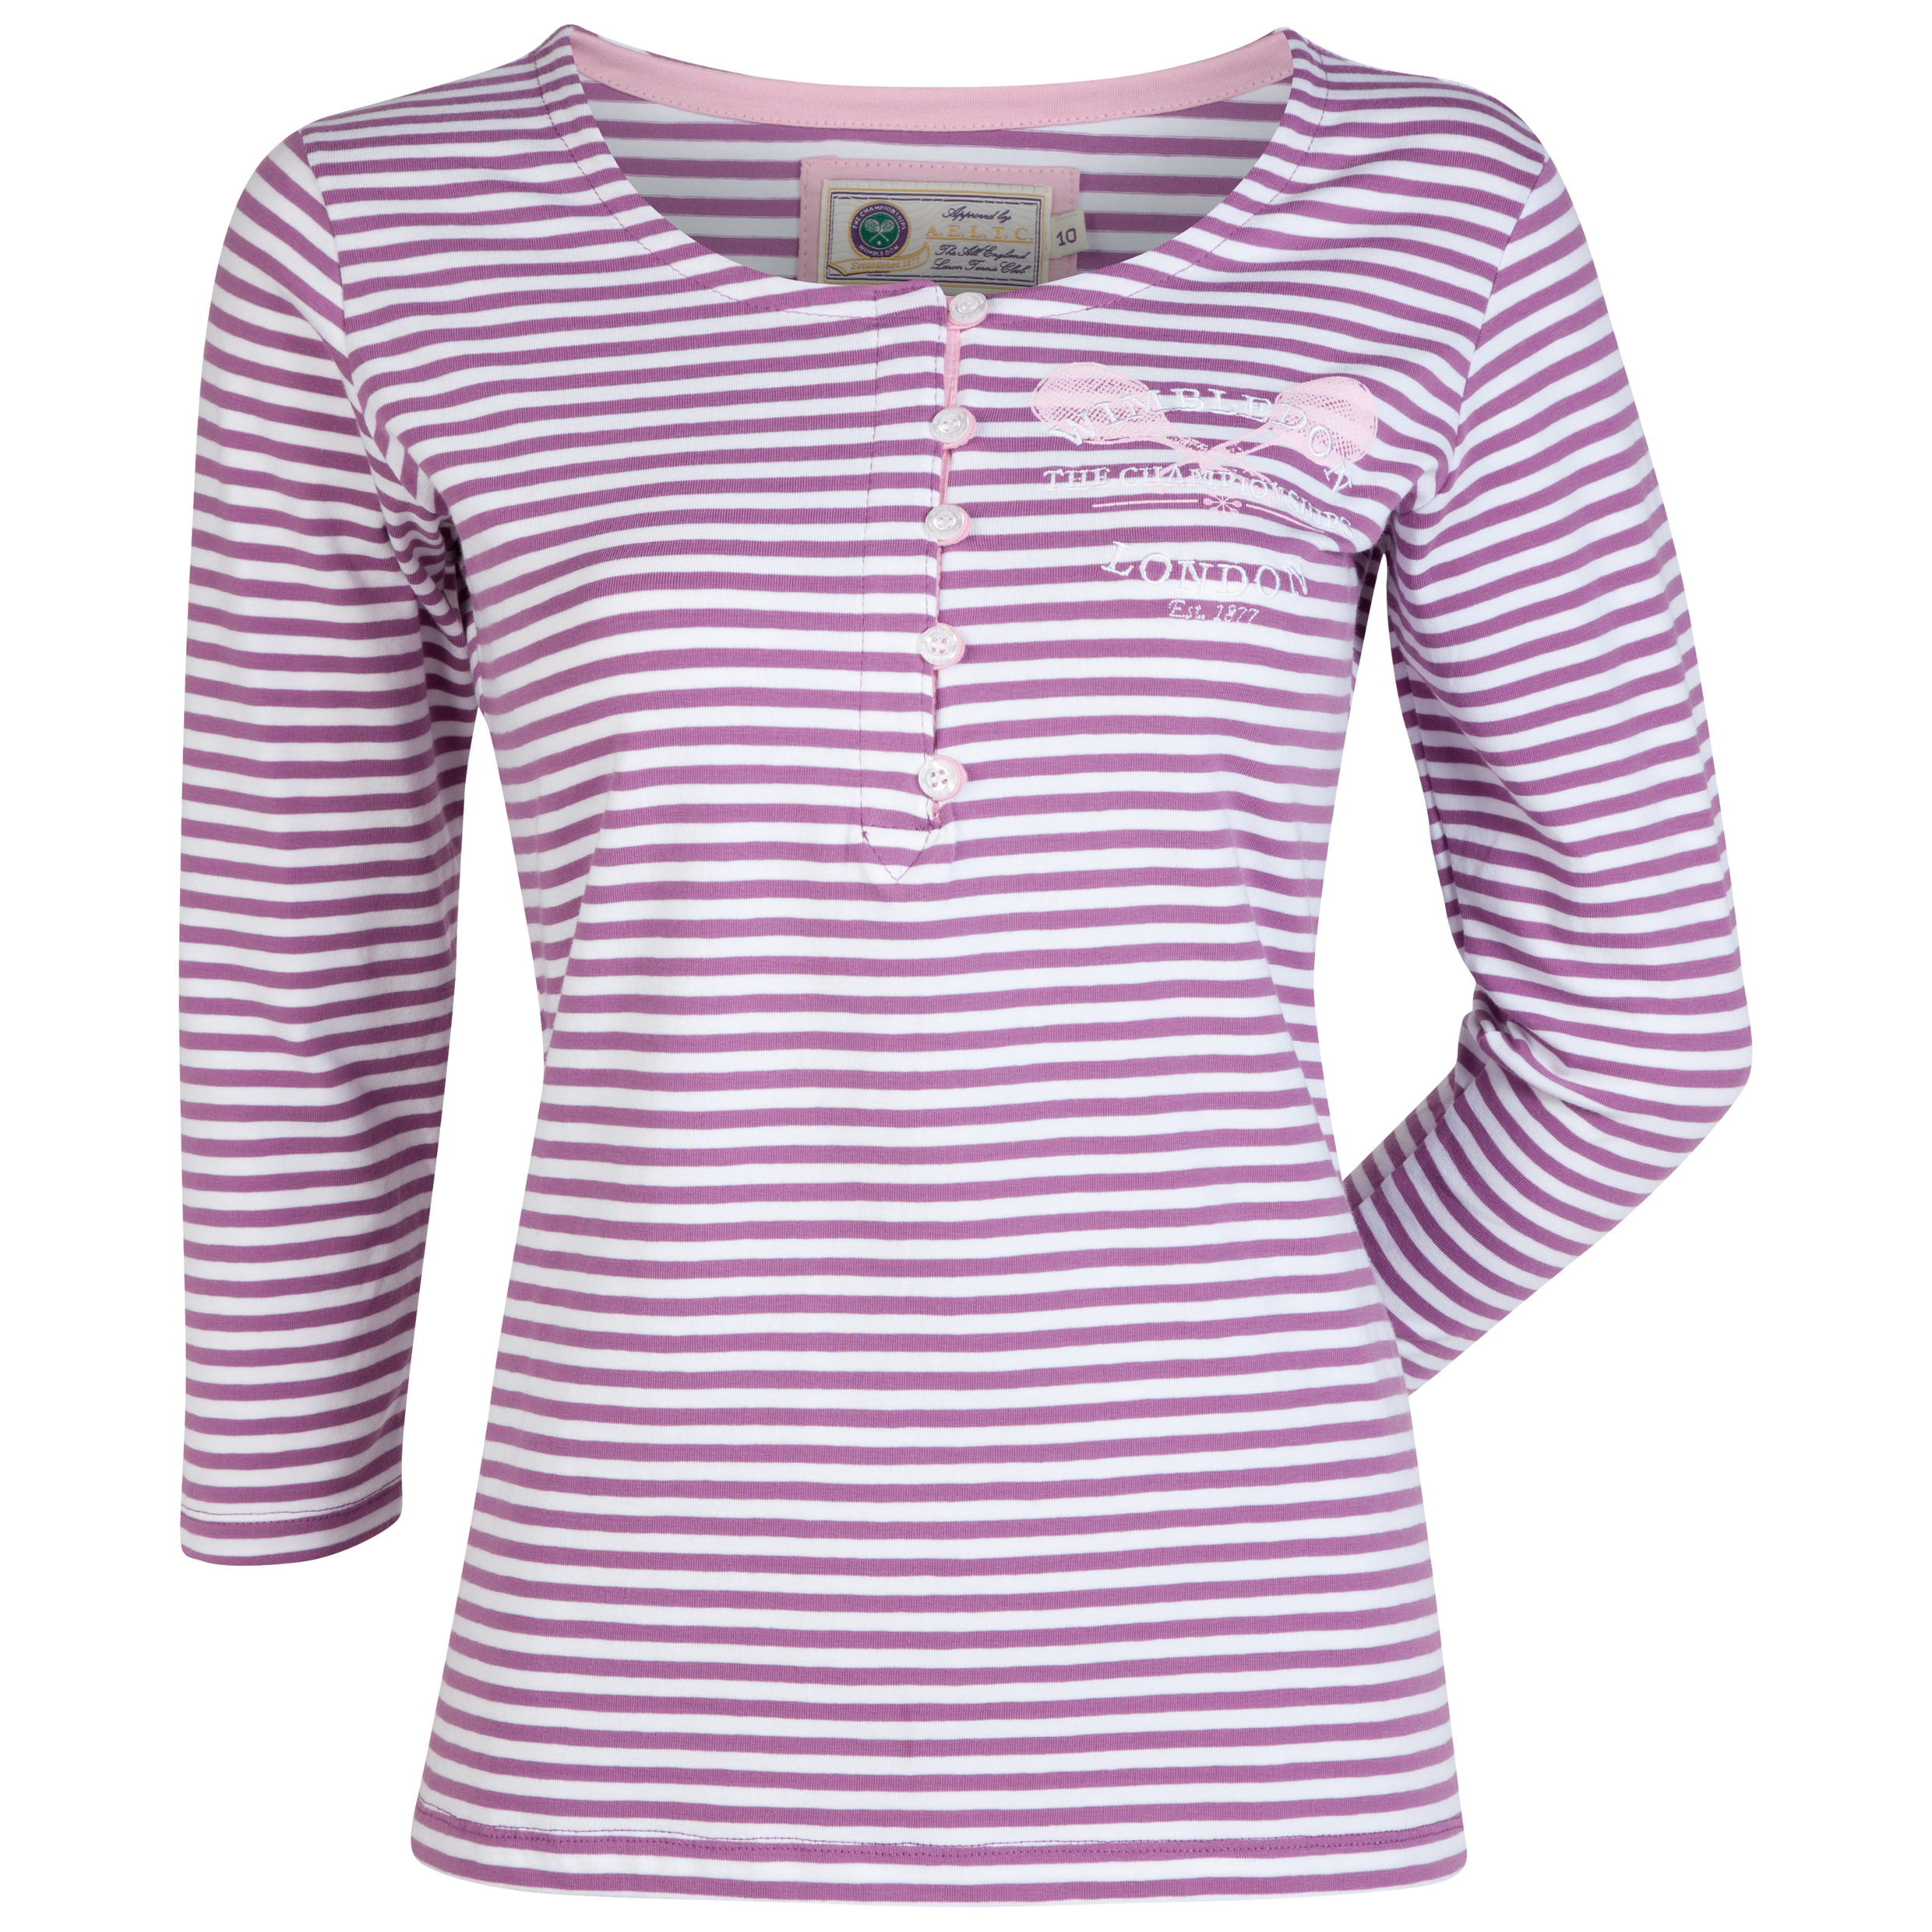 Wimbledon 3/4 Sleeve Striped T-Shirt - Womens